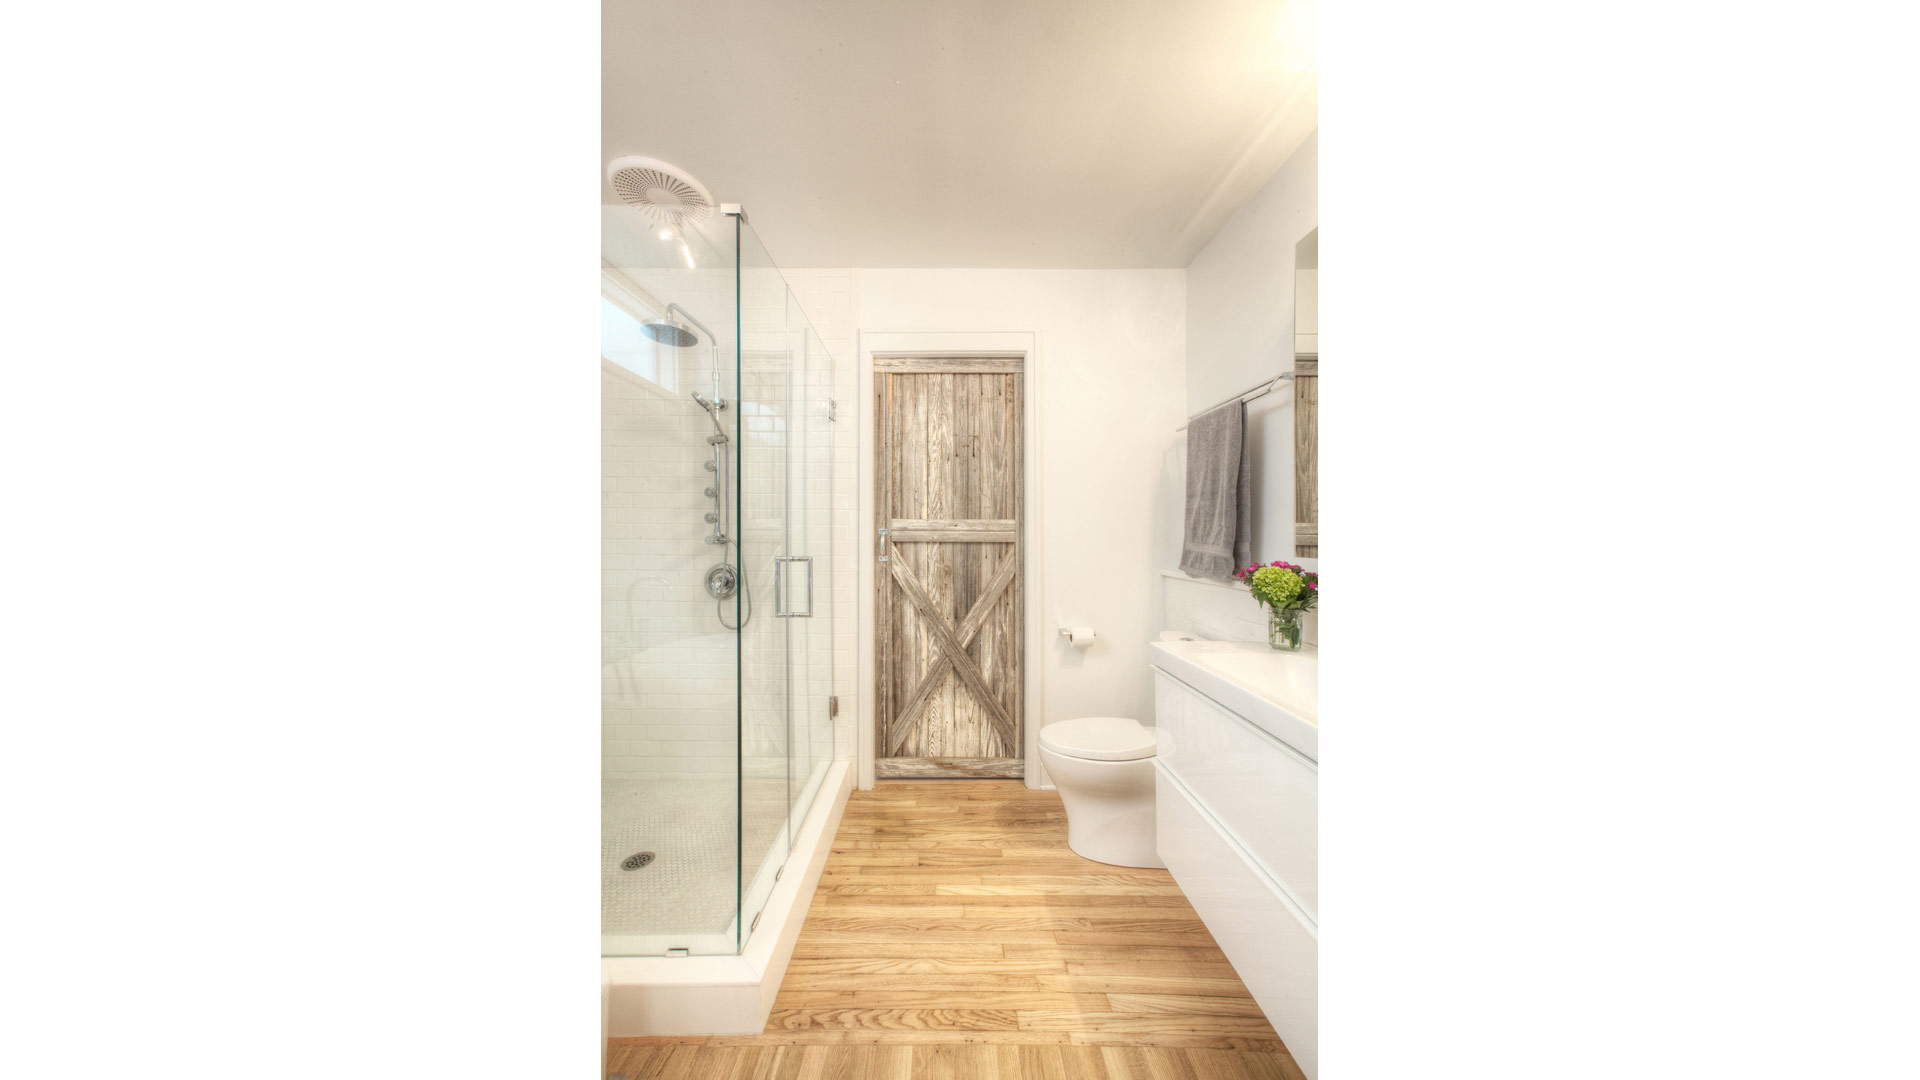 Broad Ripple Bungalow - Master Spa + Closet Salvaged Reclaimed Wood Doors - HAUS Architecture, WERK Building Modern, Christopher Short, Indianapolis Architect